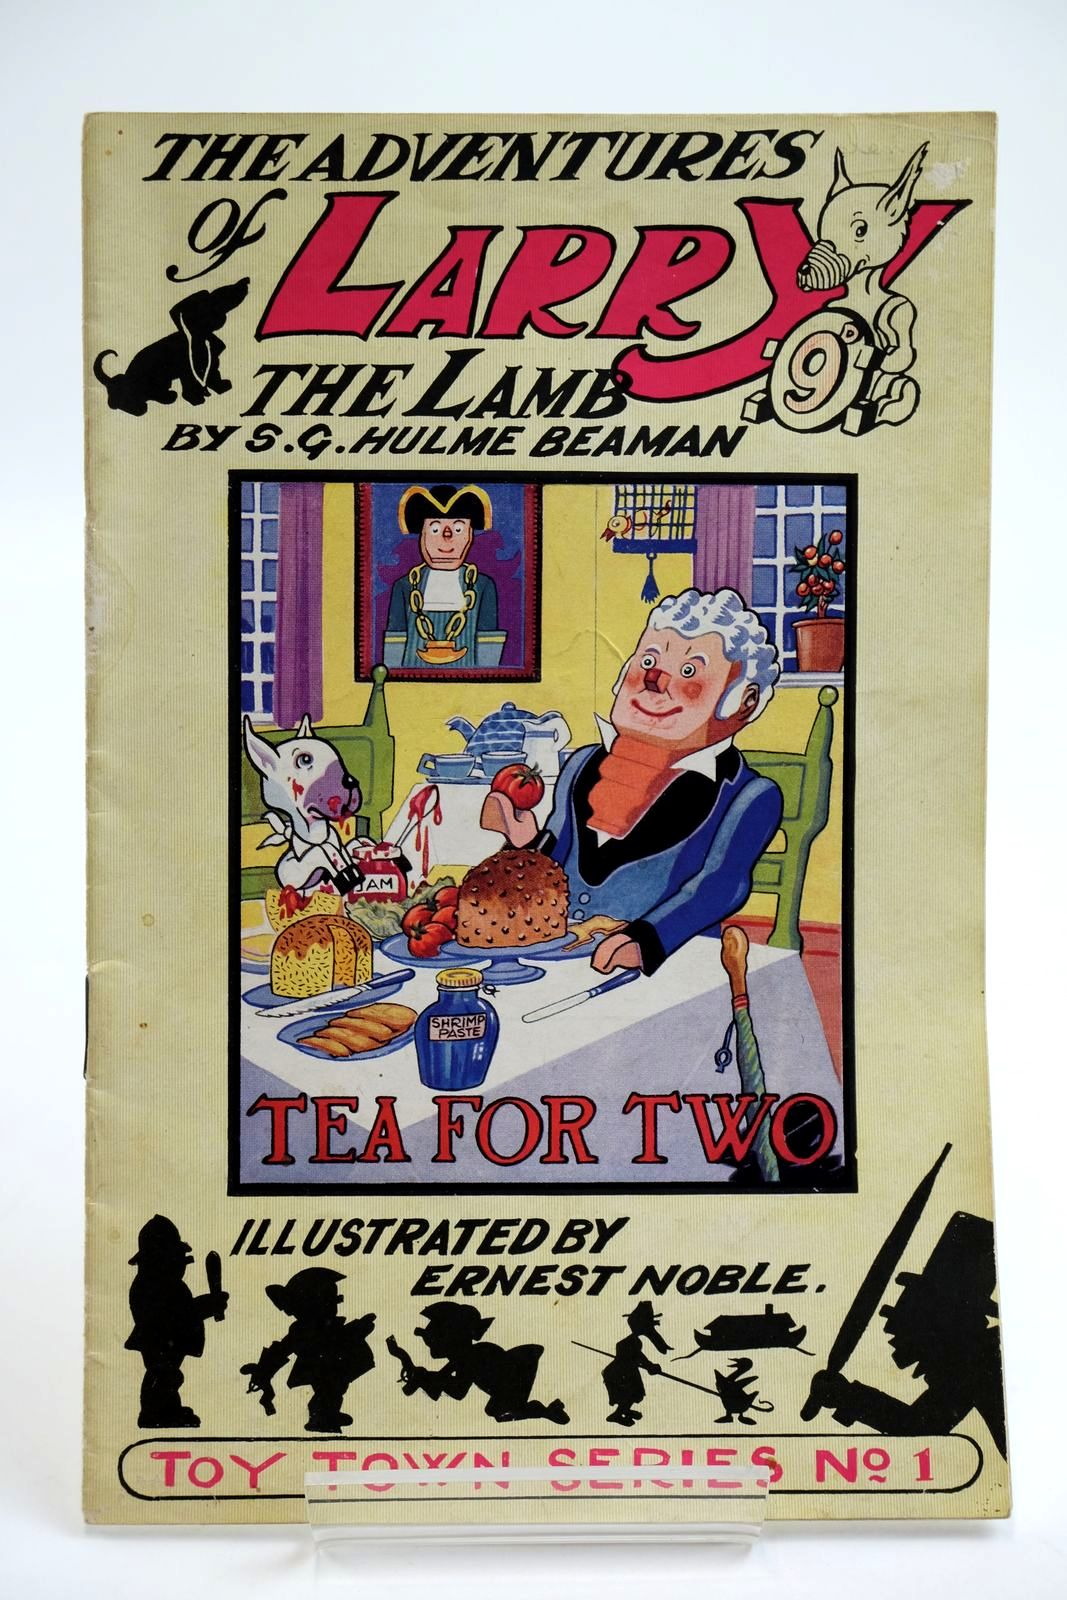 Photo of THE ADVENTURES OF LARRY THE LAMB - TEA FOR TWO written by Beaman, S.G. Hulme illustrated by Noble, Ernest published by George Lapworth & Co (STOCK CODE: 2133903)  for sale by Stella & Rose's Books